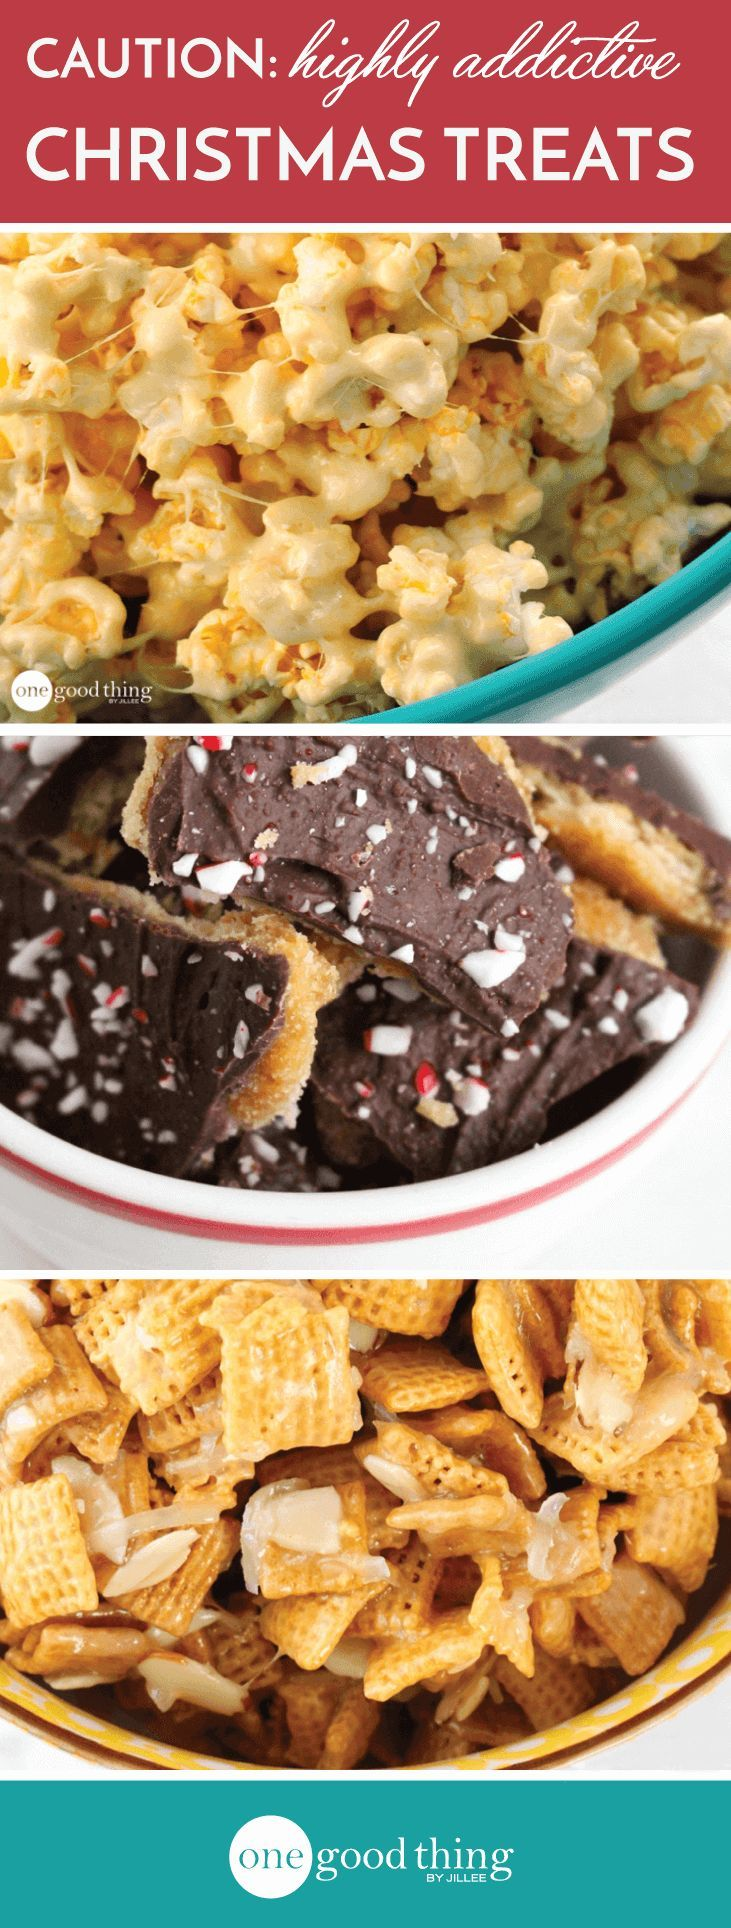 405 best celebrate christmas treats images on pinterest 3 addictive christmas treats youll want to make right now solutioingenieria Gallery